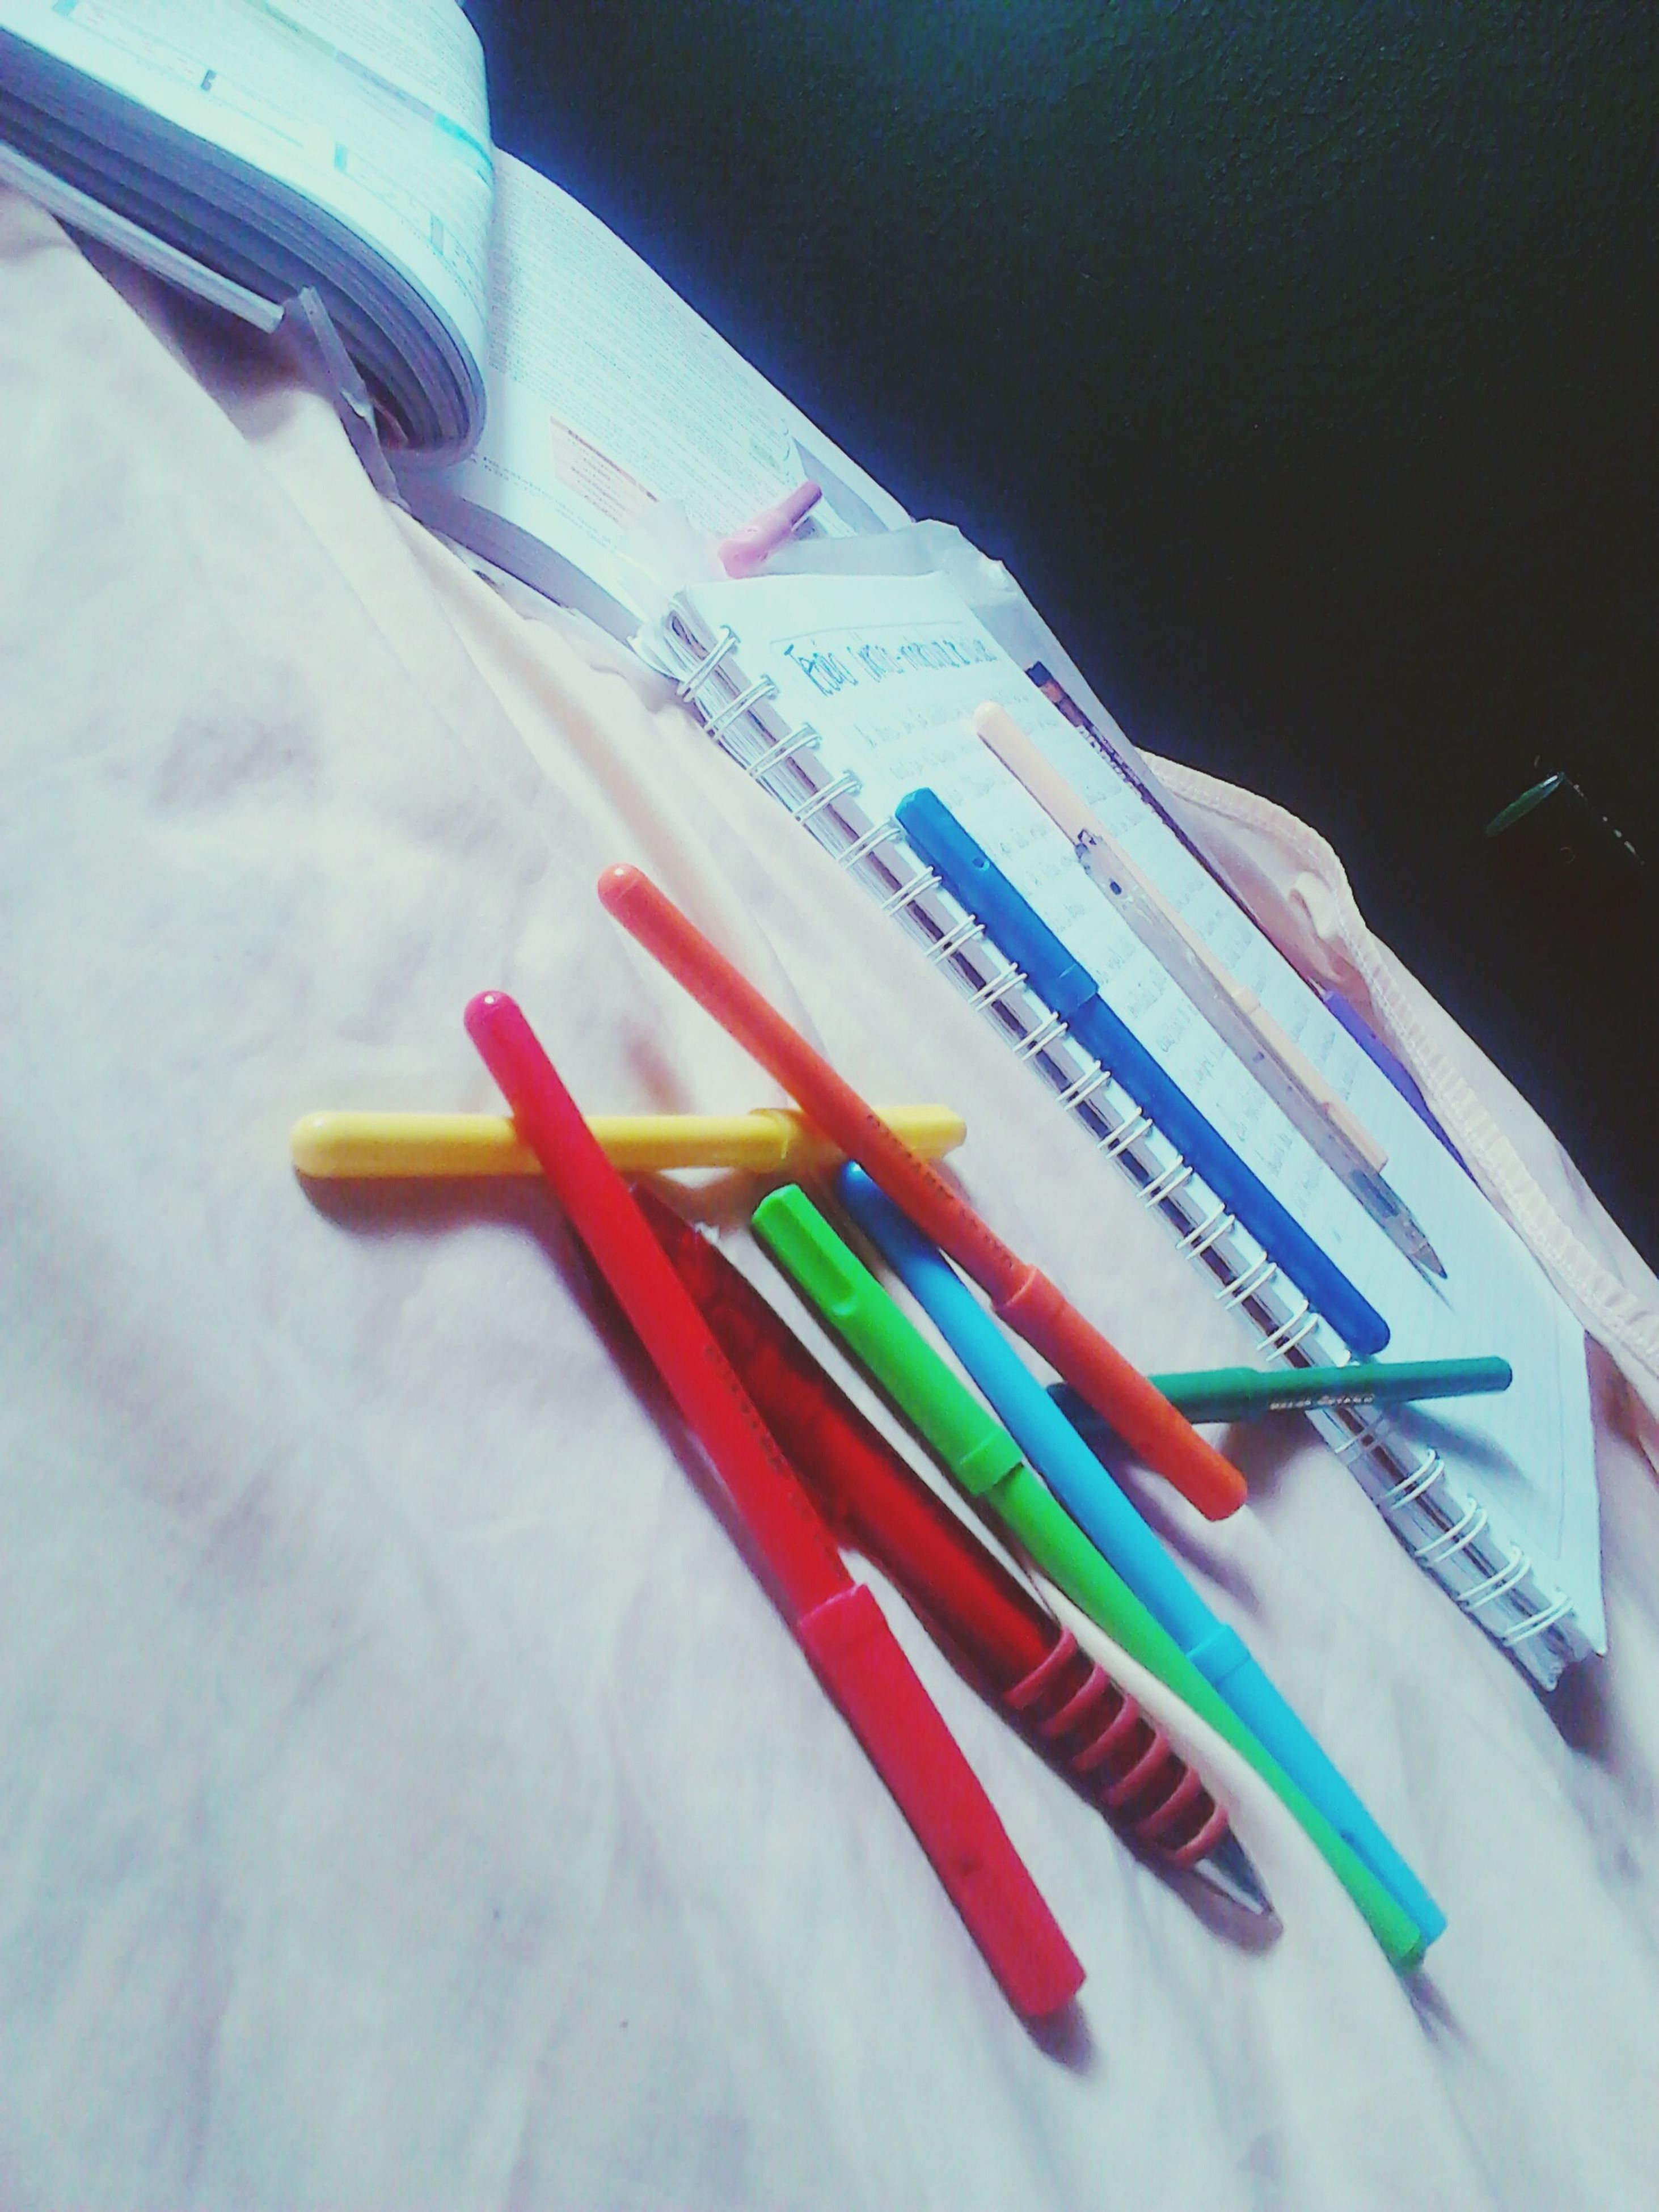 multi colored, variation, still life, indoors, colorful, pencil, colored pencil, high angle view, close-up, large group of objects, table, choice, pen, no people, arrangement, plastic, education, white color, group of objects, paper